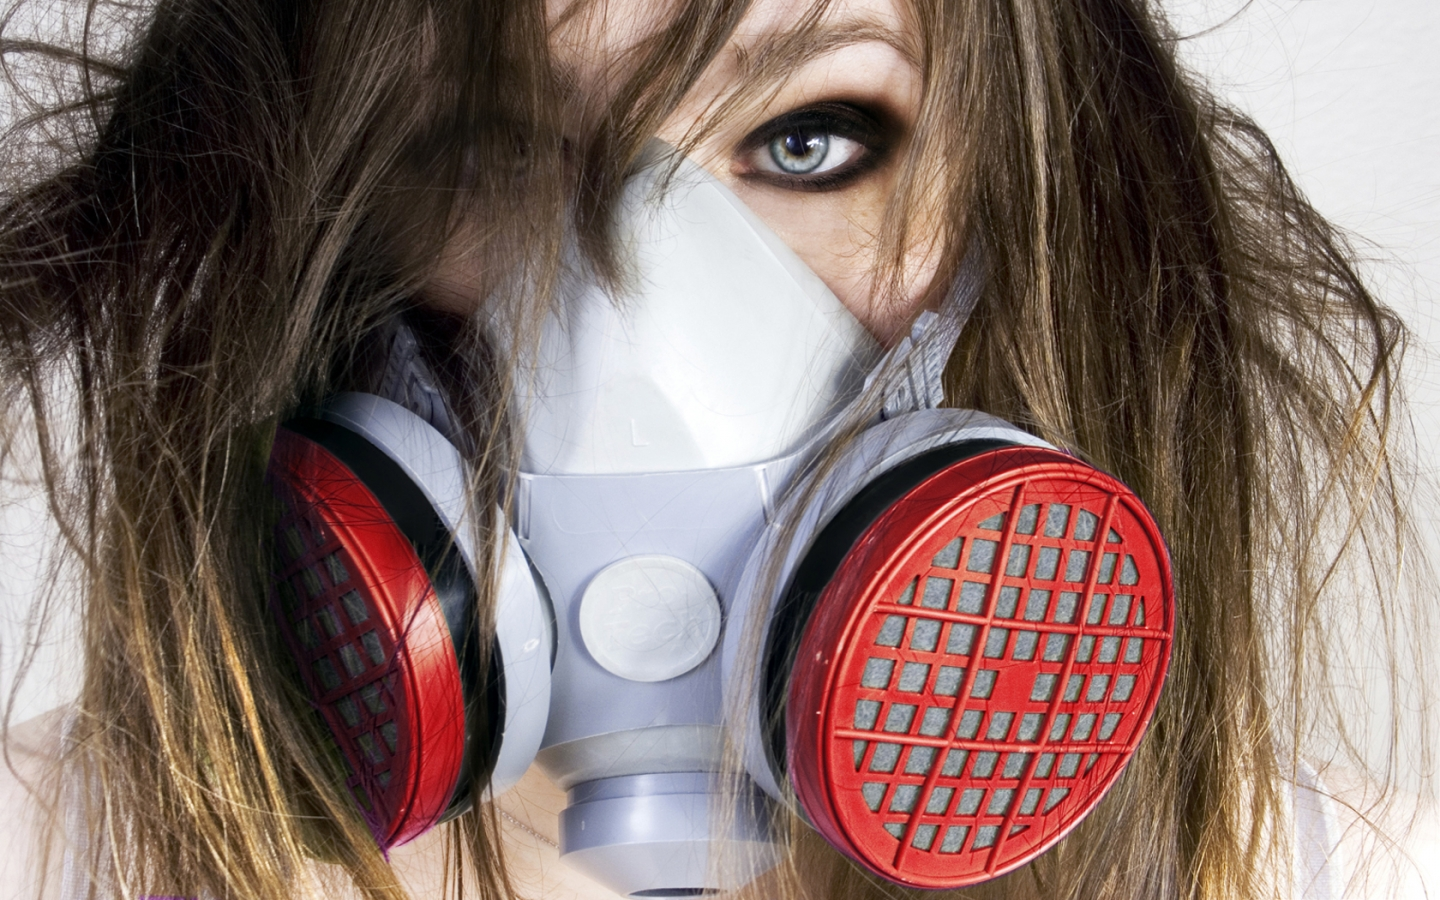 Dubstep Girl | Dubstep Toxic Girl Wallszone Wallpaper with